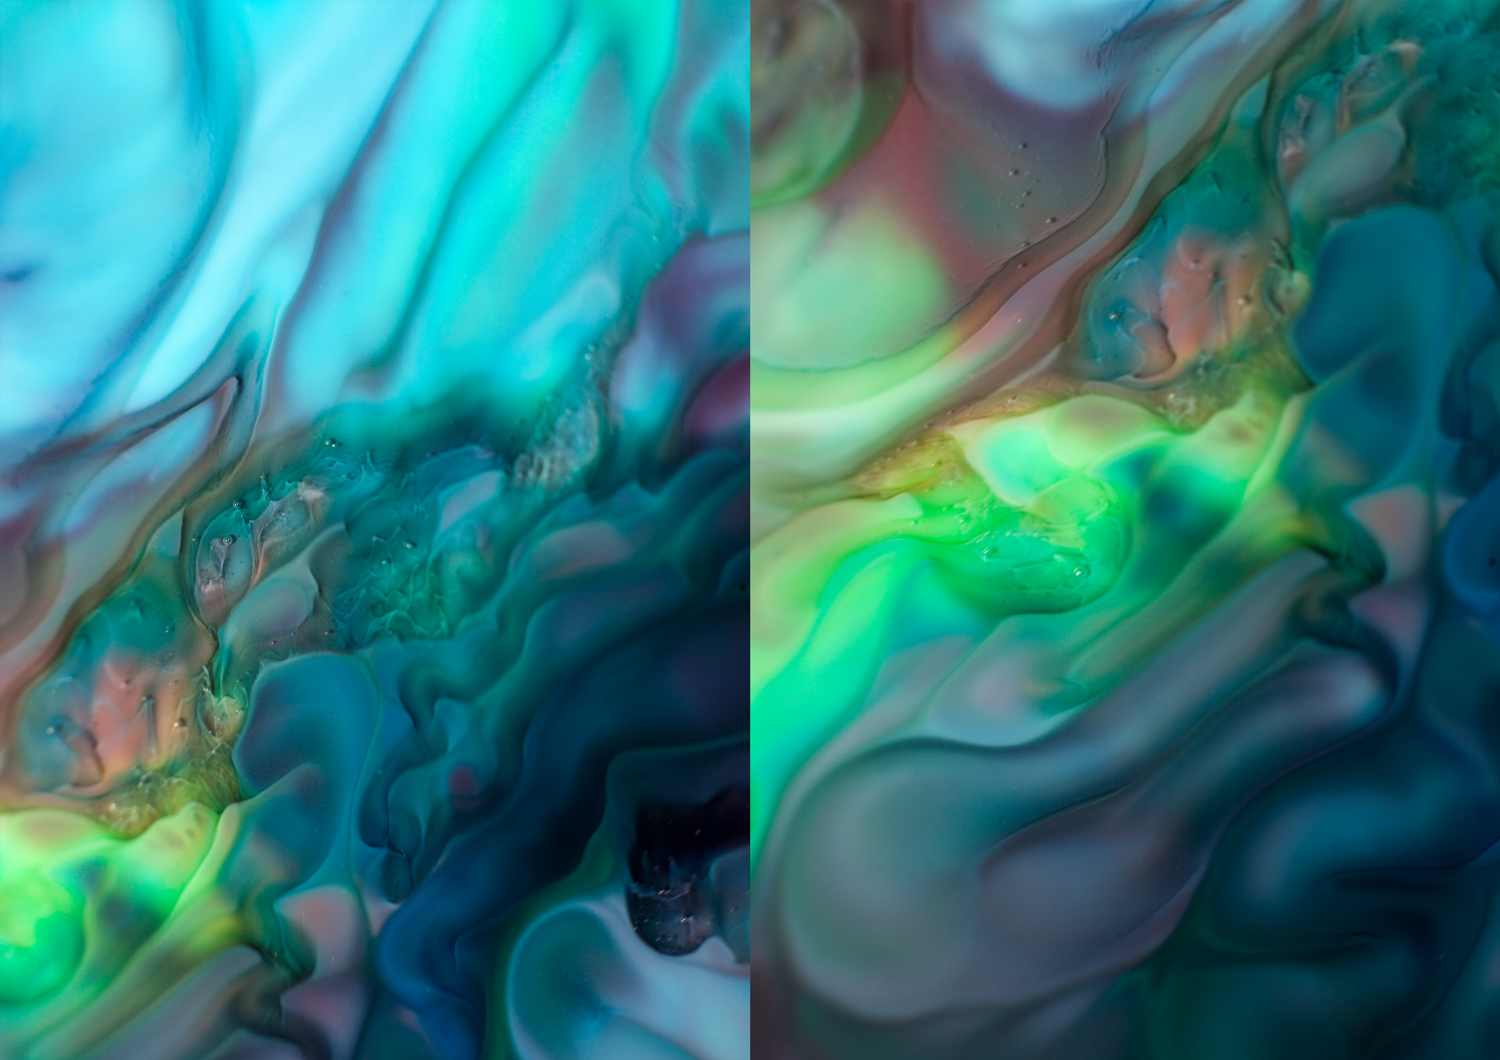 photography with food coloring and milk. Pictures by Megan Kennedy.